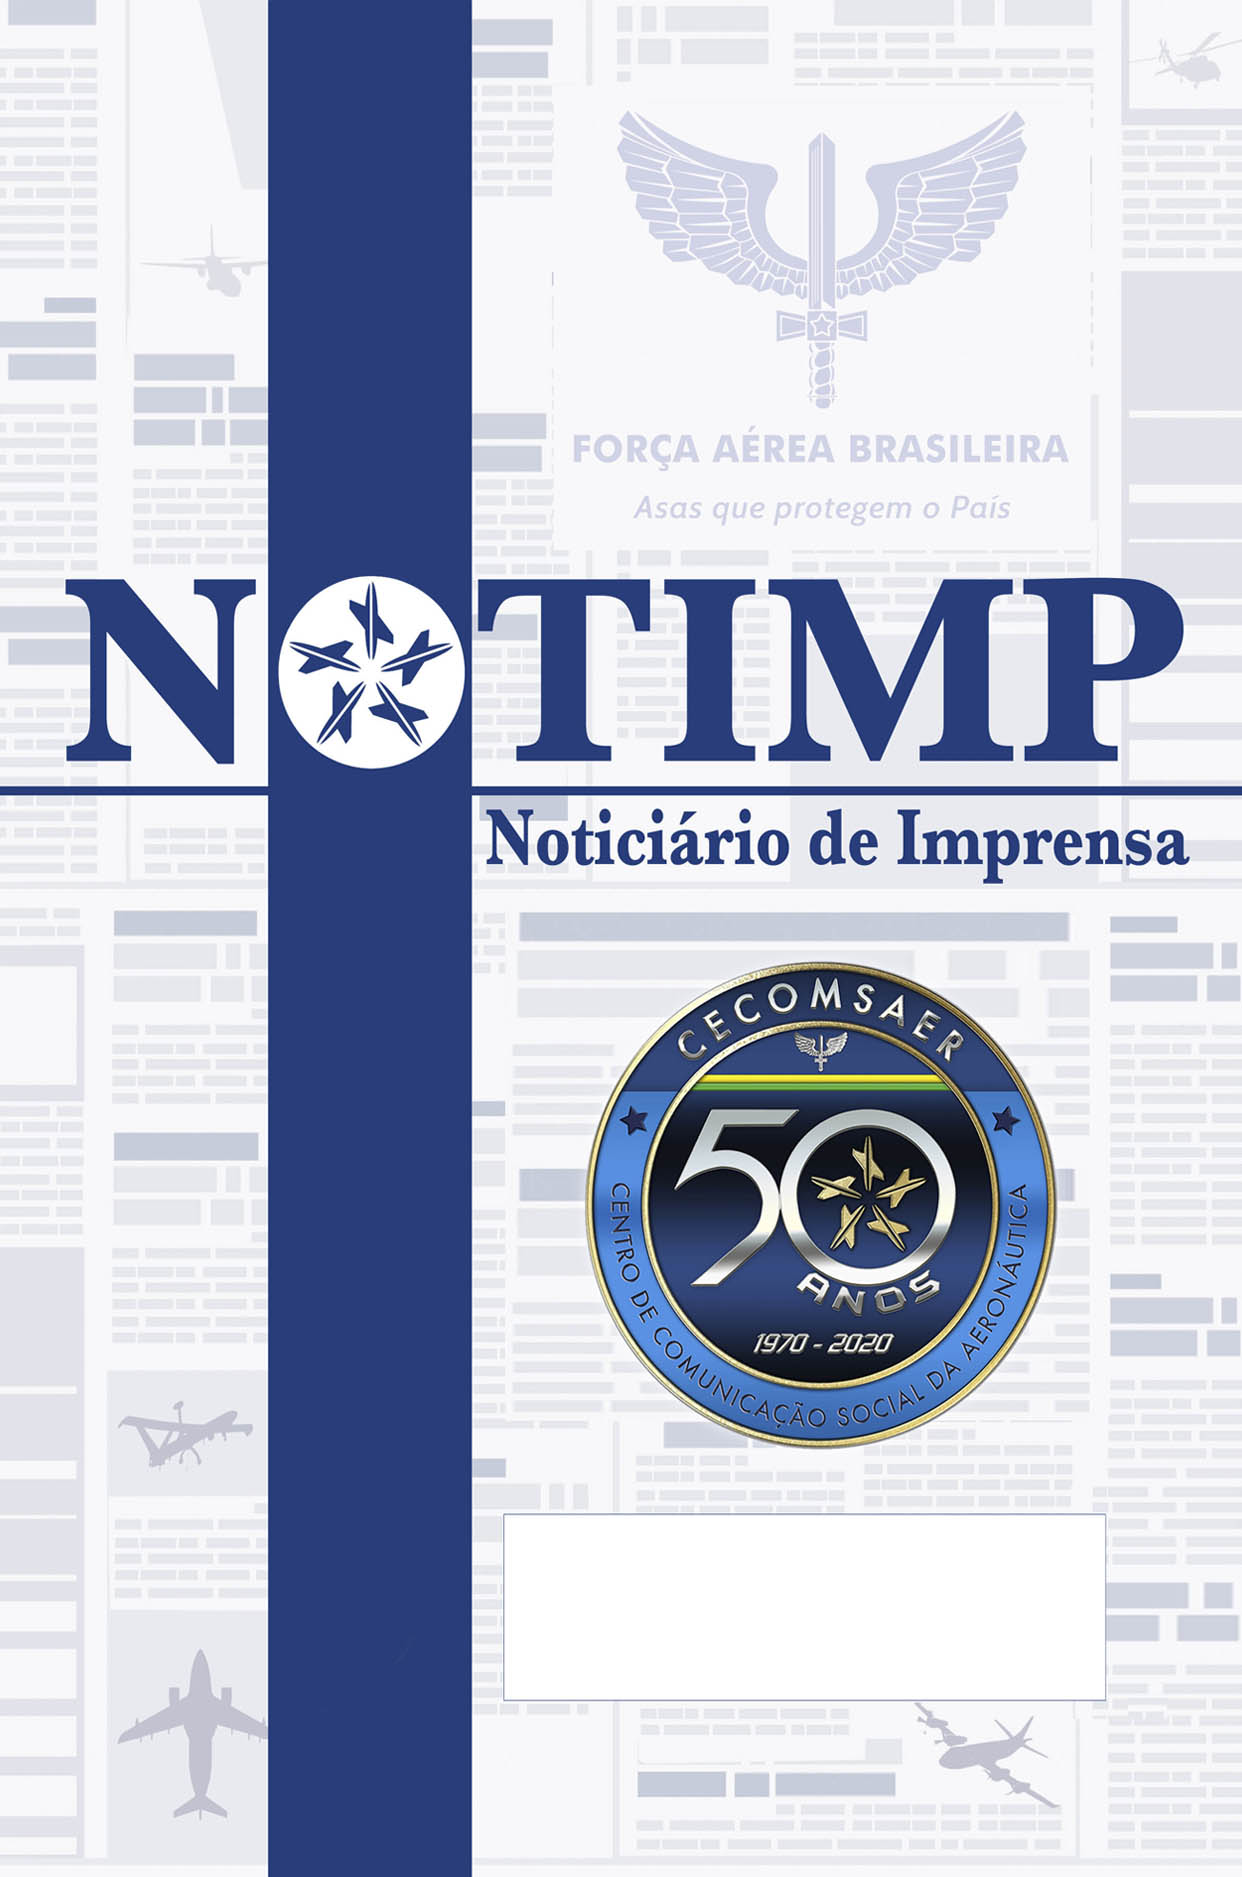 Capa Notimp